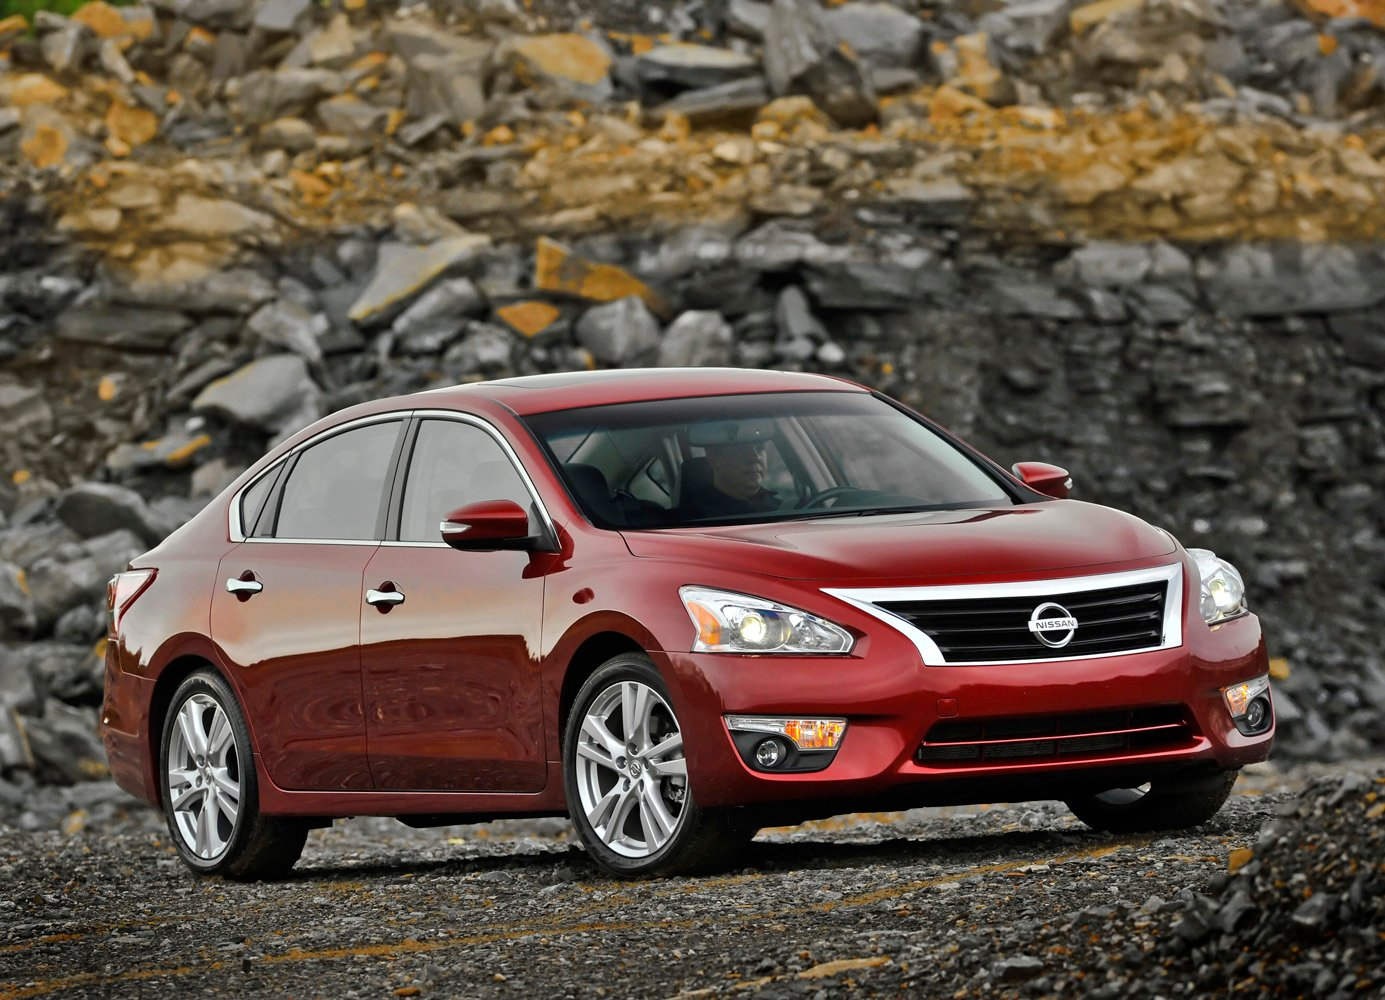 New for 2014: Nissan Cars | J.D. Power